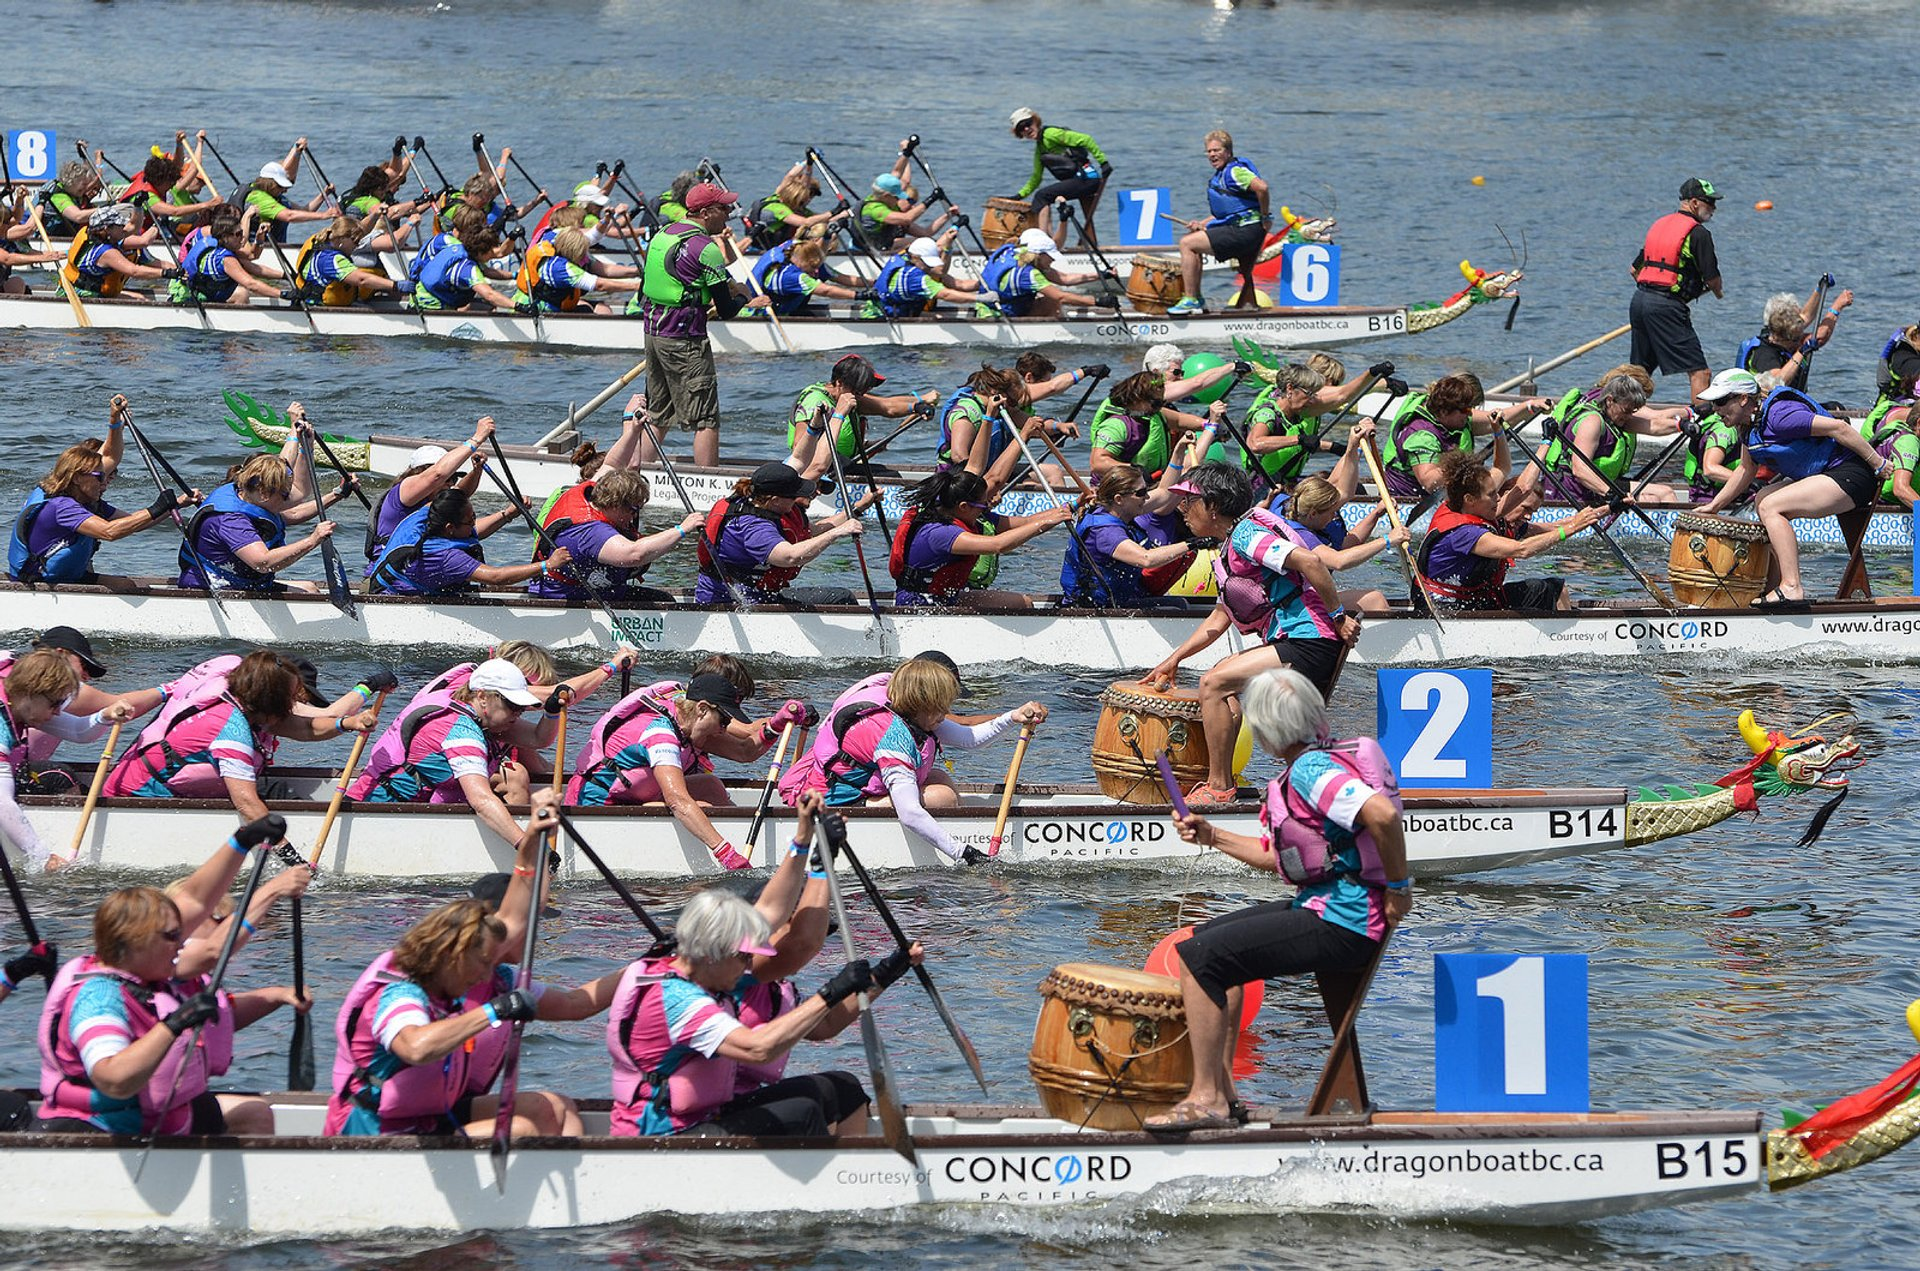 Best time for Dragon Boat Festival in Vancouver 2020